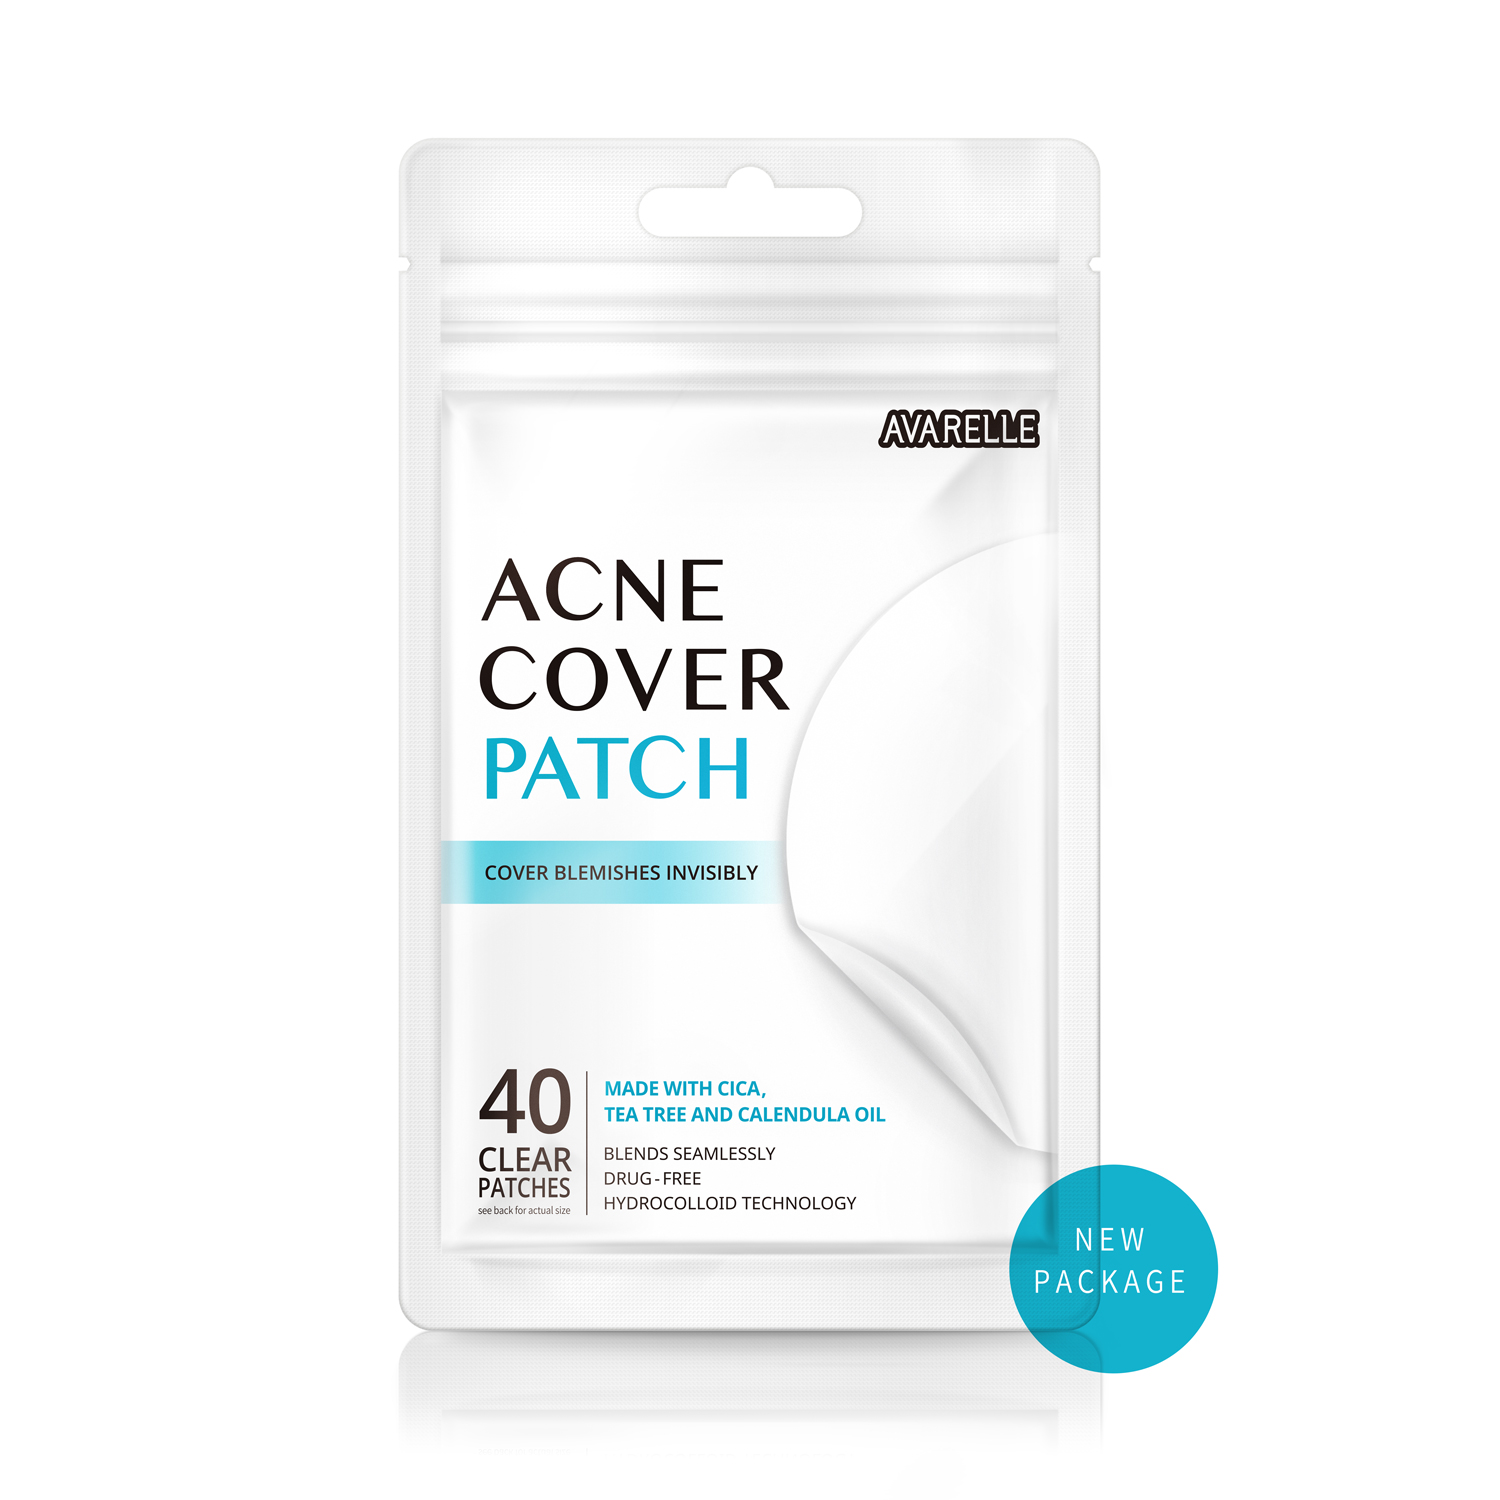 Acne Pimple Patch Absorbing Cover Blemish  Grayscale image